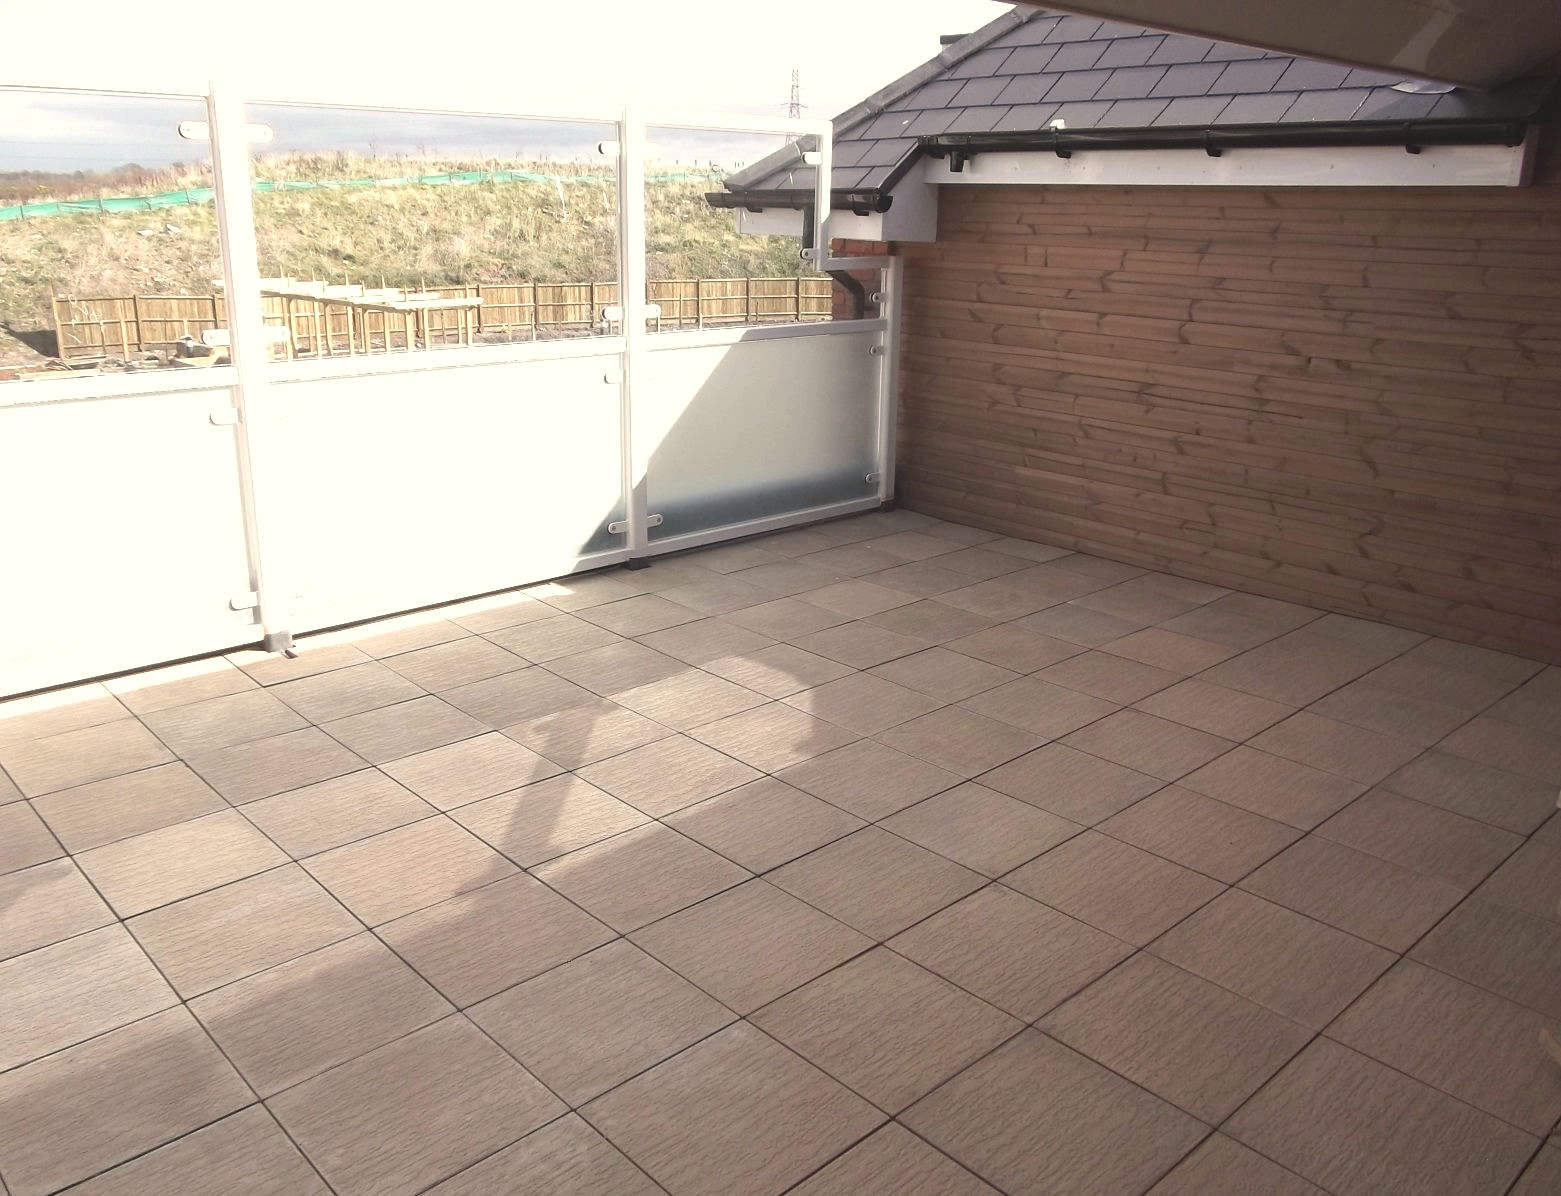 Promenade Tile Installation R Amp D Roofing